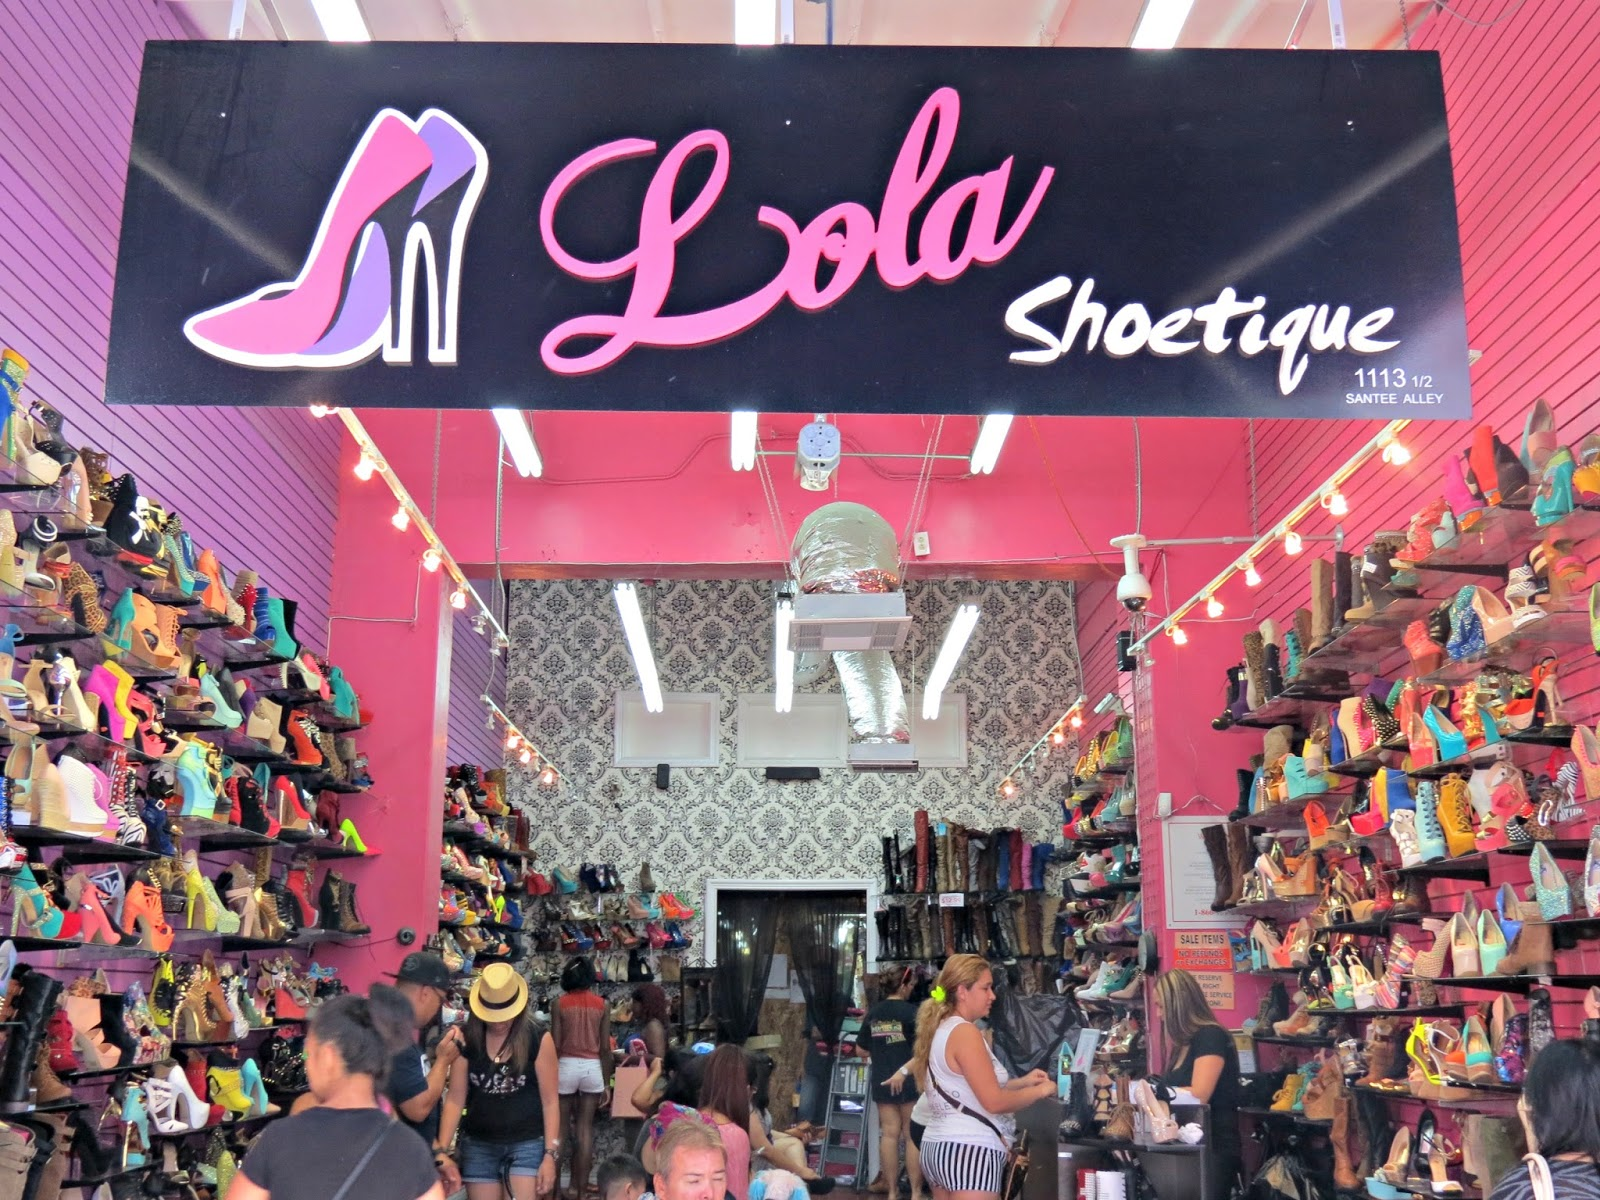 The santee alley the santee alley loves lola shoetique for Nearby boutiques